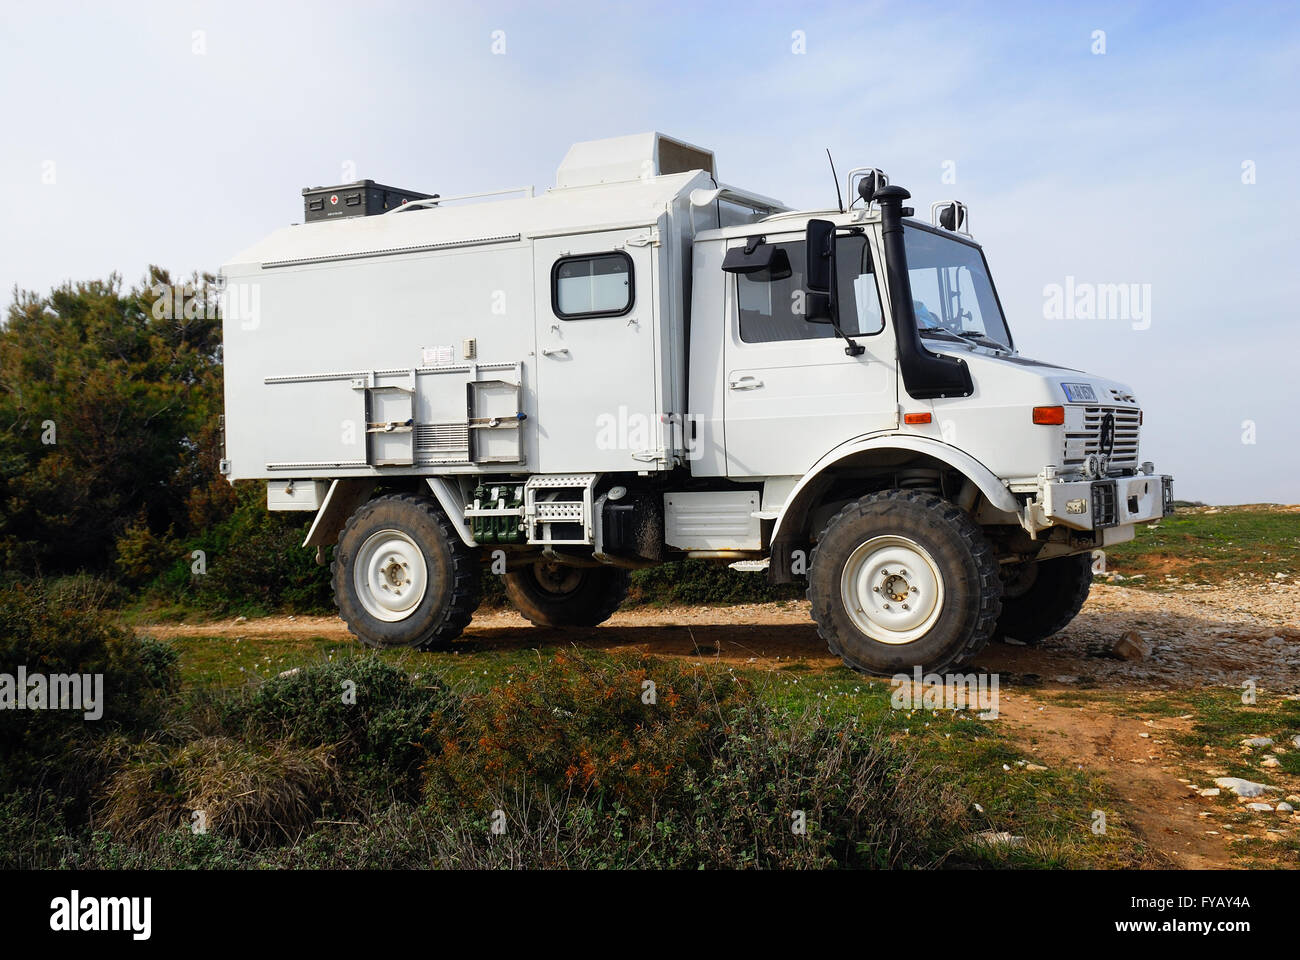 Page 2 Mercedes Truck High Resolution Stock Photography And Images Alamy